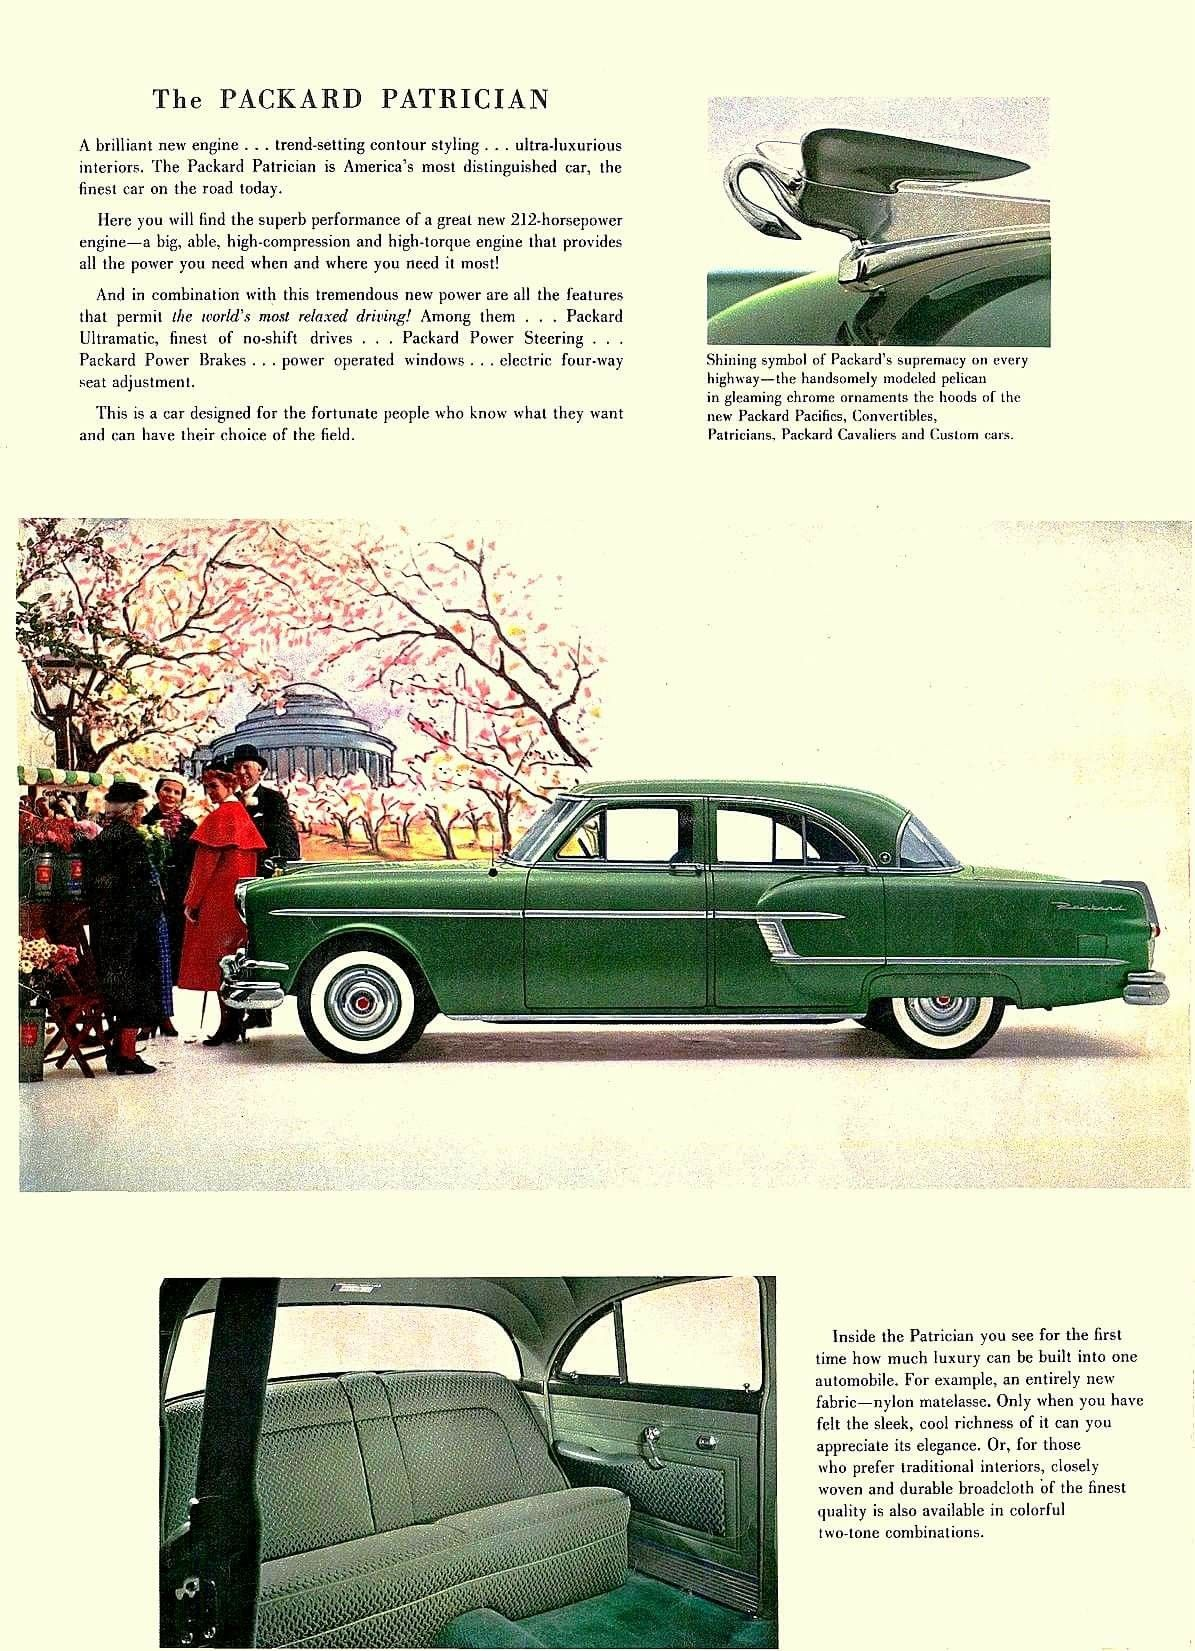 Pin by Daniel White on Packard Auto Ads | Pinterest